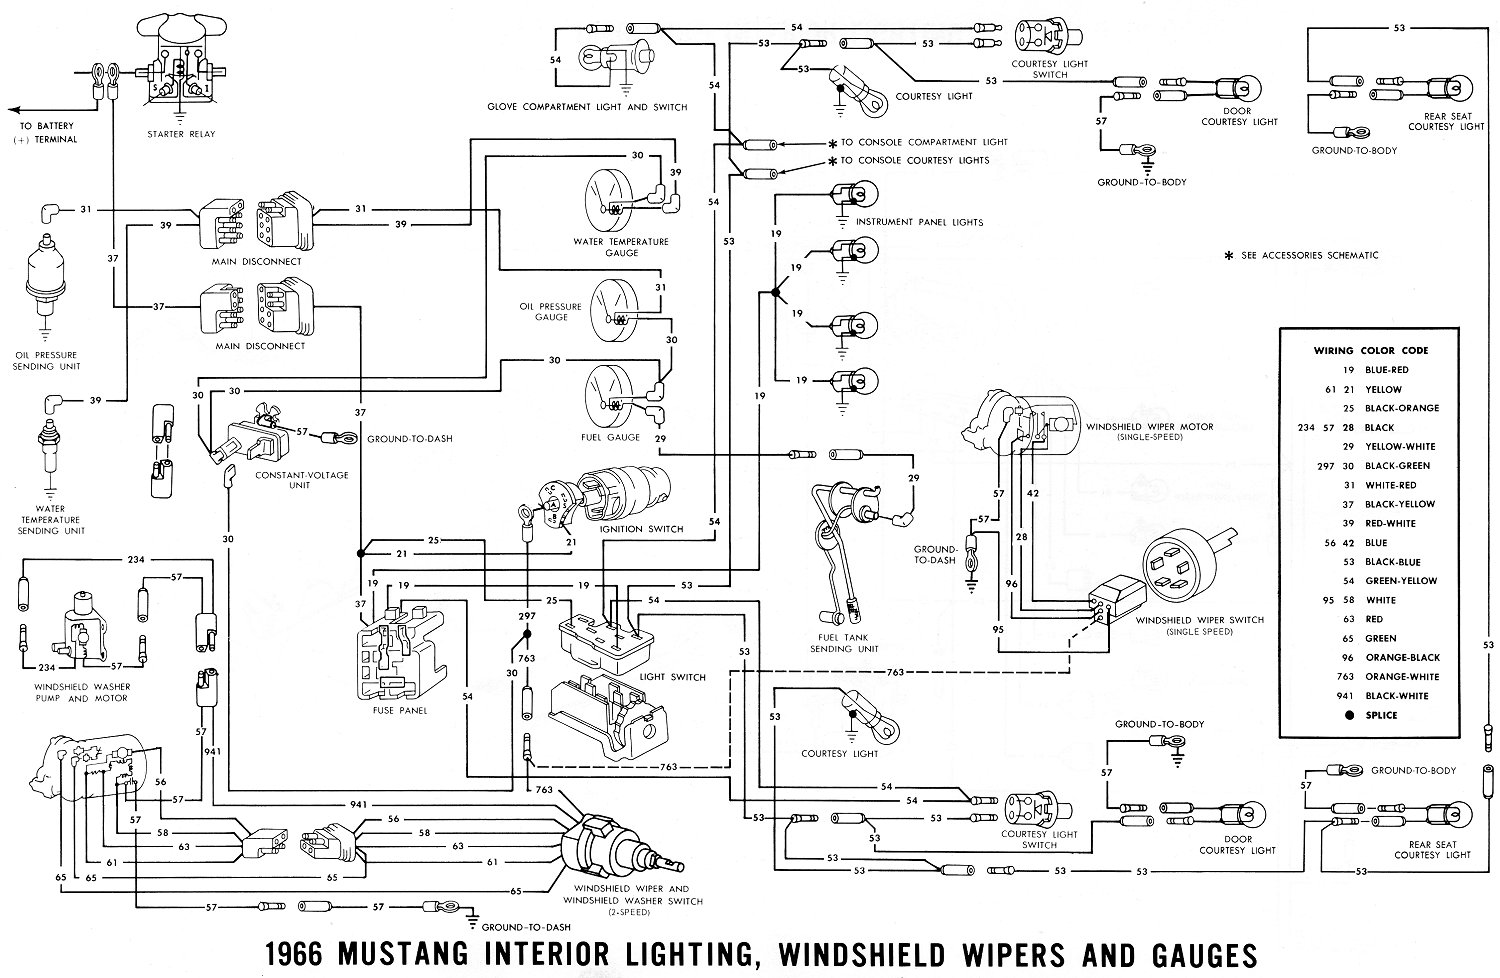 hight resolution of 1966 mustang underdash wiring problems can you identify these plugs 1966 mustang replacement underdash wiring harness ford mustang forum